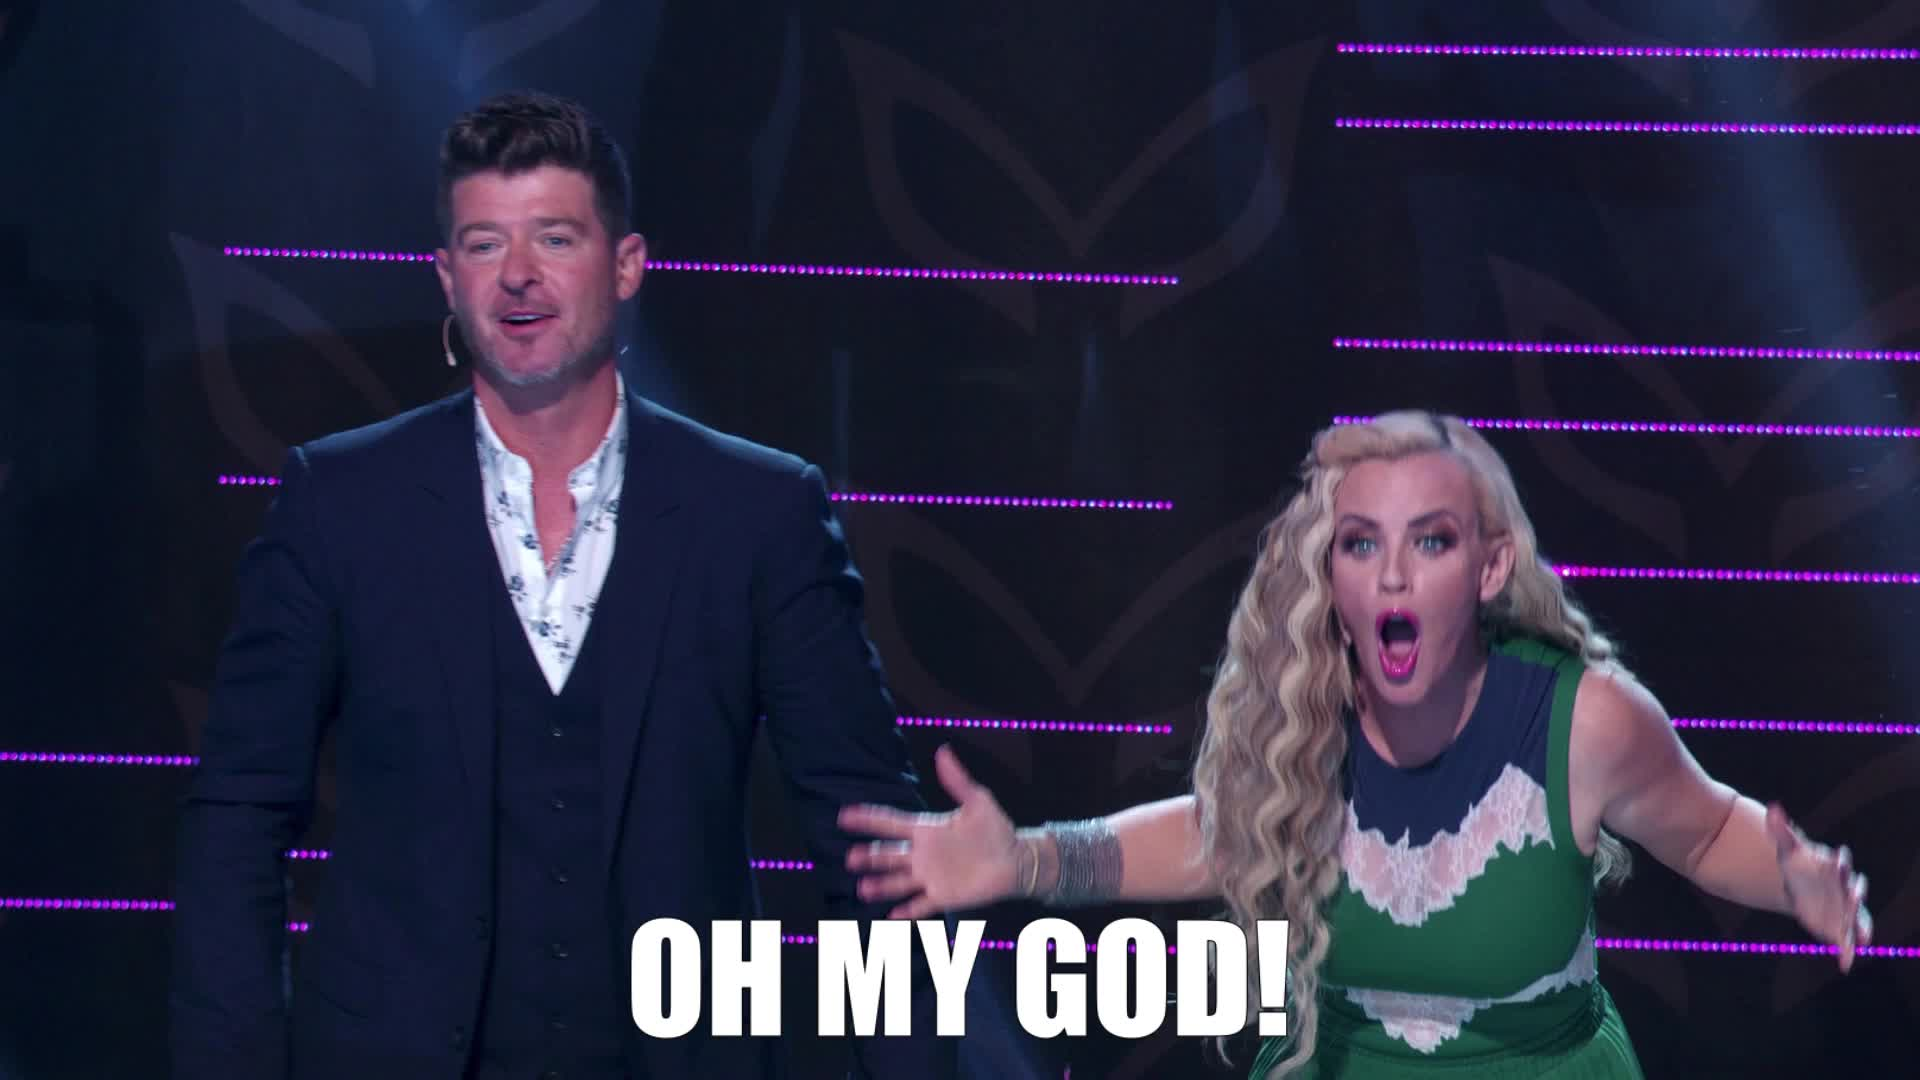 crazy, excited, jenny mccarthy, masked singer, mind blown, oh my god, oh my gosh, omg, robin thicke, shocked, surprise, the masked singer, the masked singer on fox, wow, wtf, Oh My God! GIFs